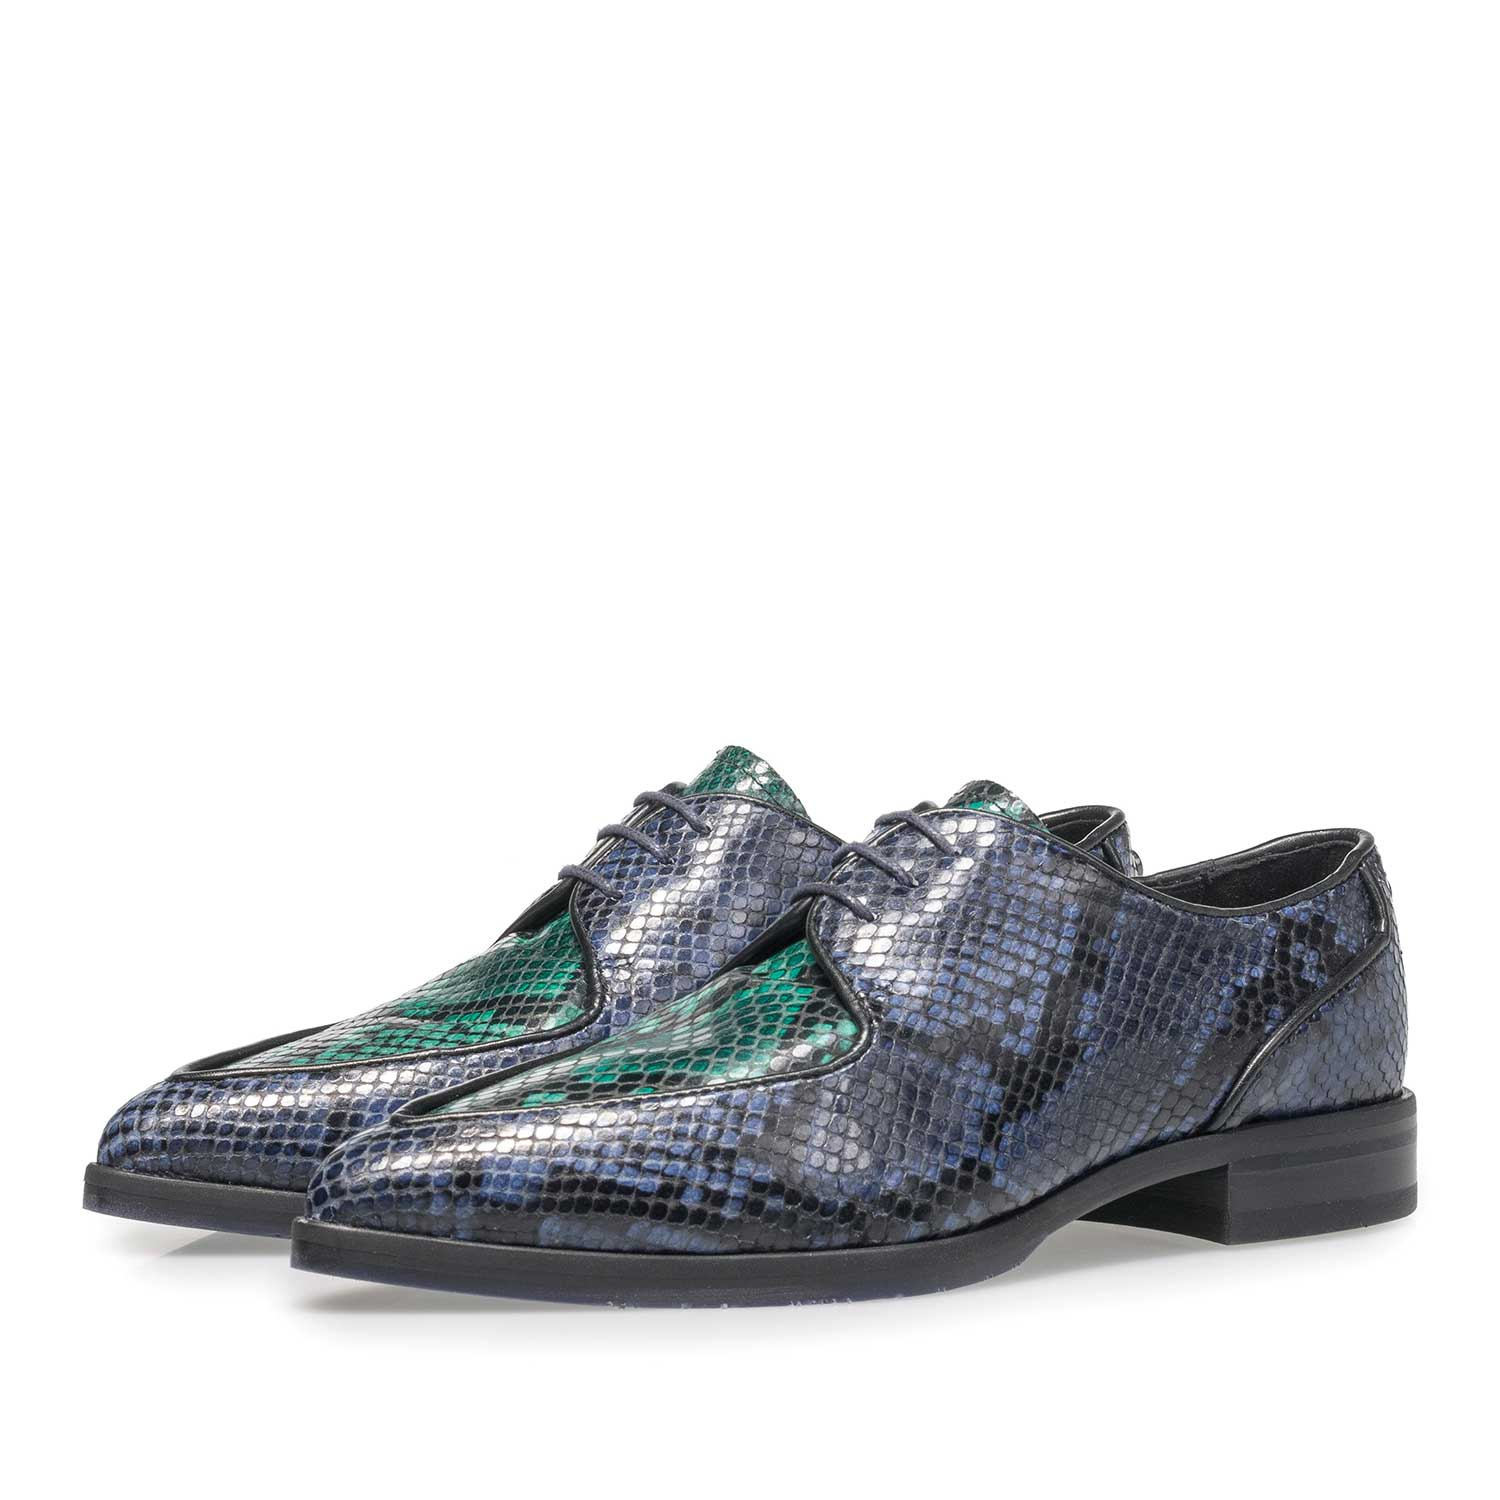 85811/04 - Blue leather lace shoe with snake print